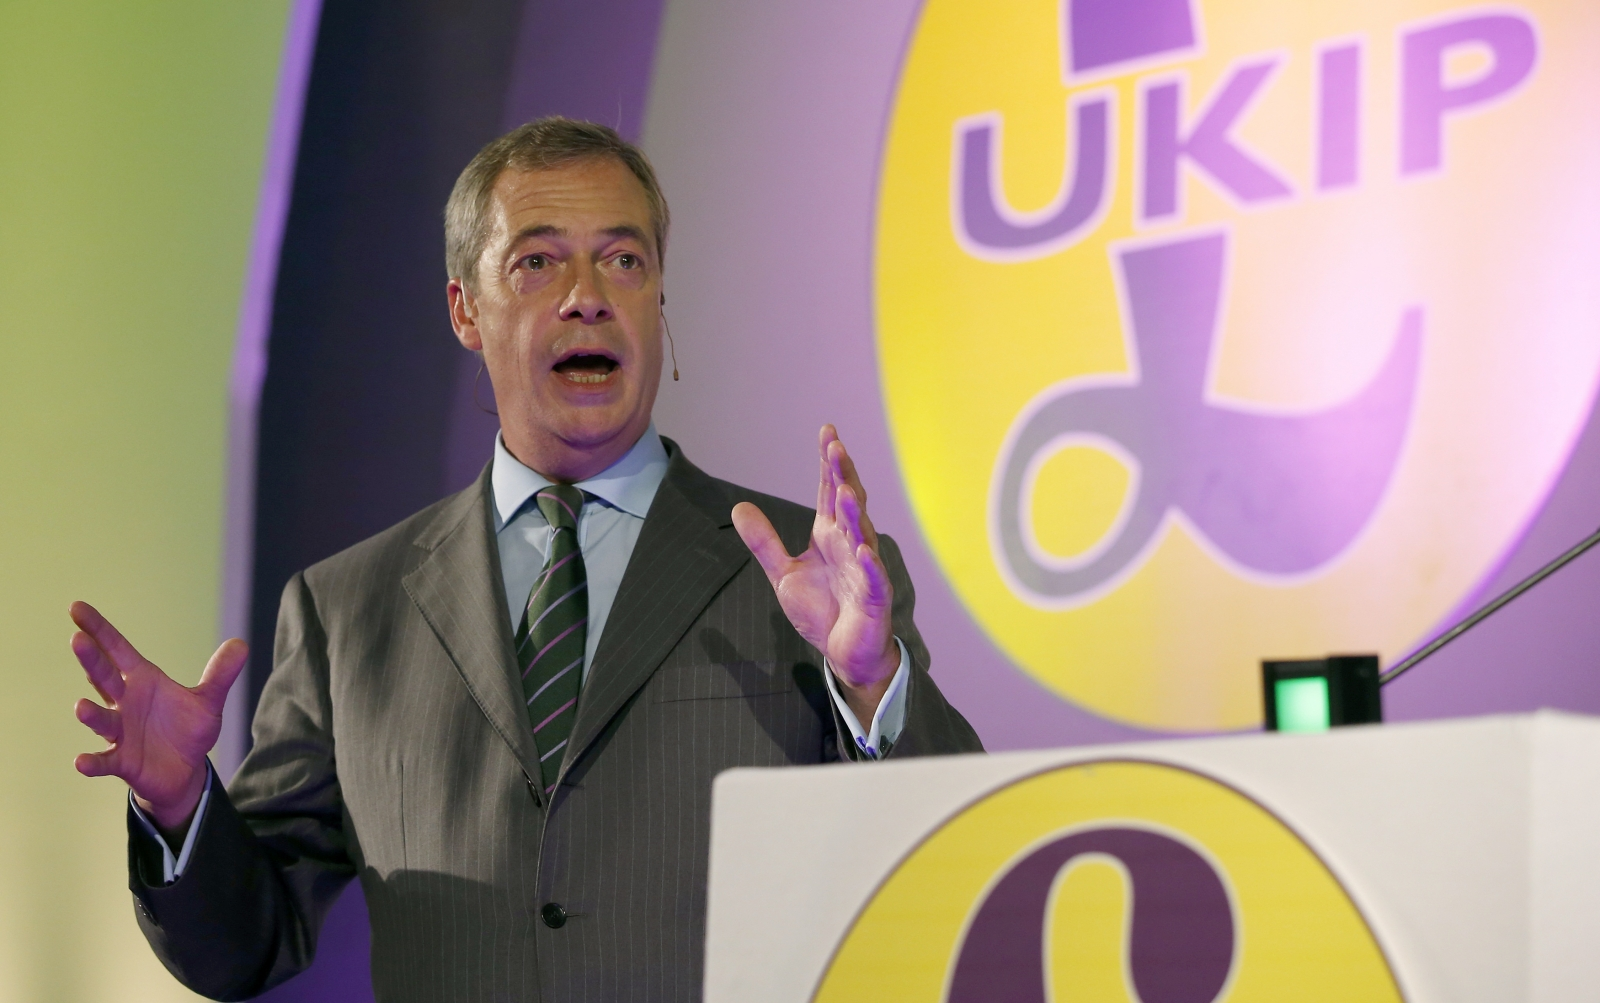 The leader of the United Kingdom Independence Party (UKIP) Nigel Farage delivers his speech at the party's annual conference at Doncaster Racecourse in Doncaster, northern England September 26, 2014